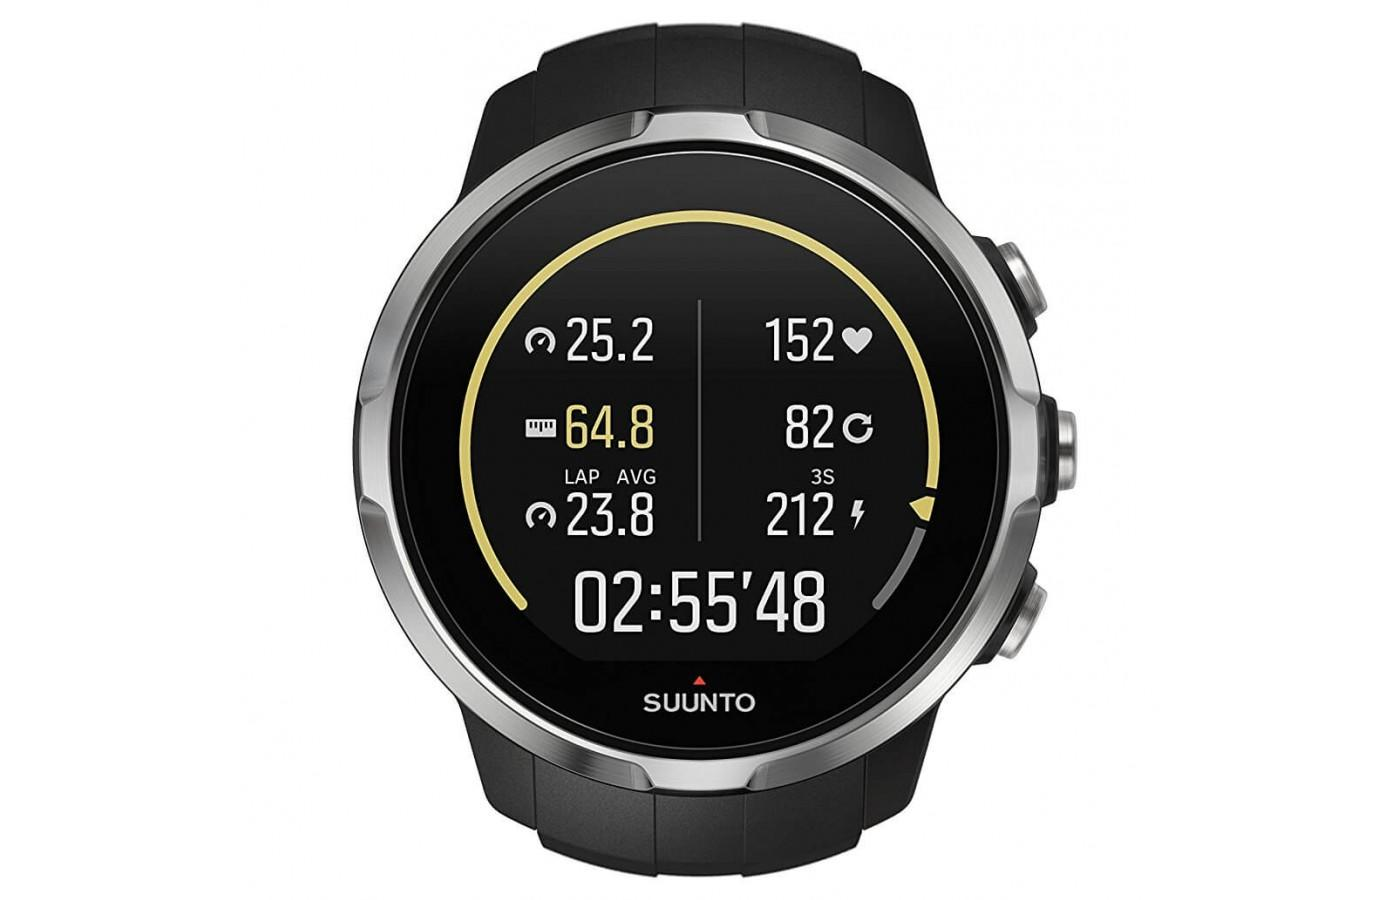 This is Suunto's first heart rate monitoring watch